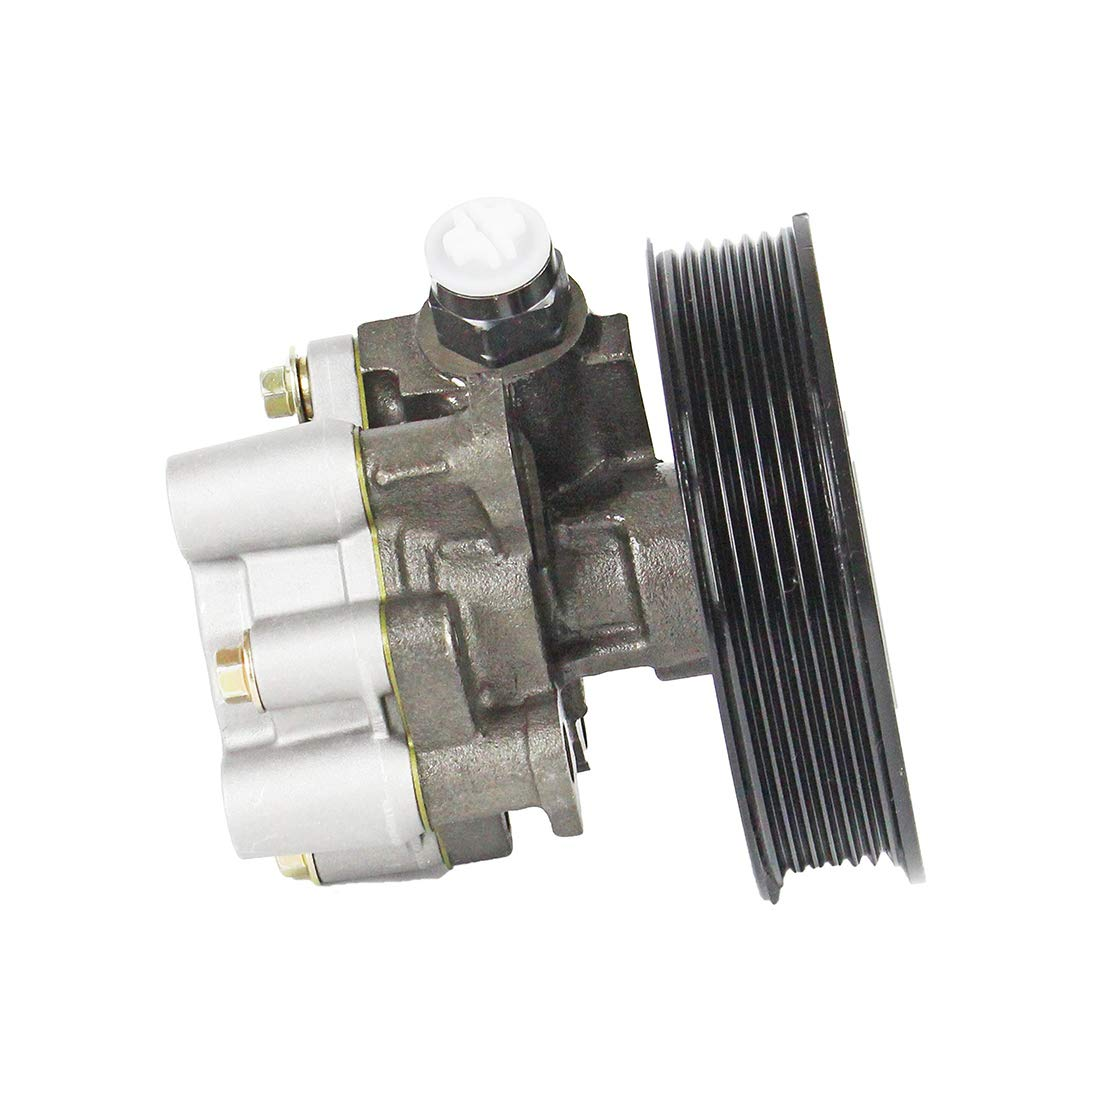 Cardoner 20282 Ford F150 1997 Remanufactured Power Steering Pump